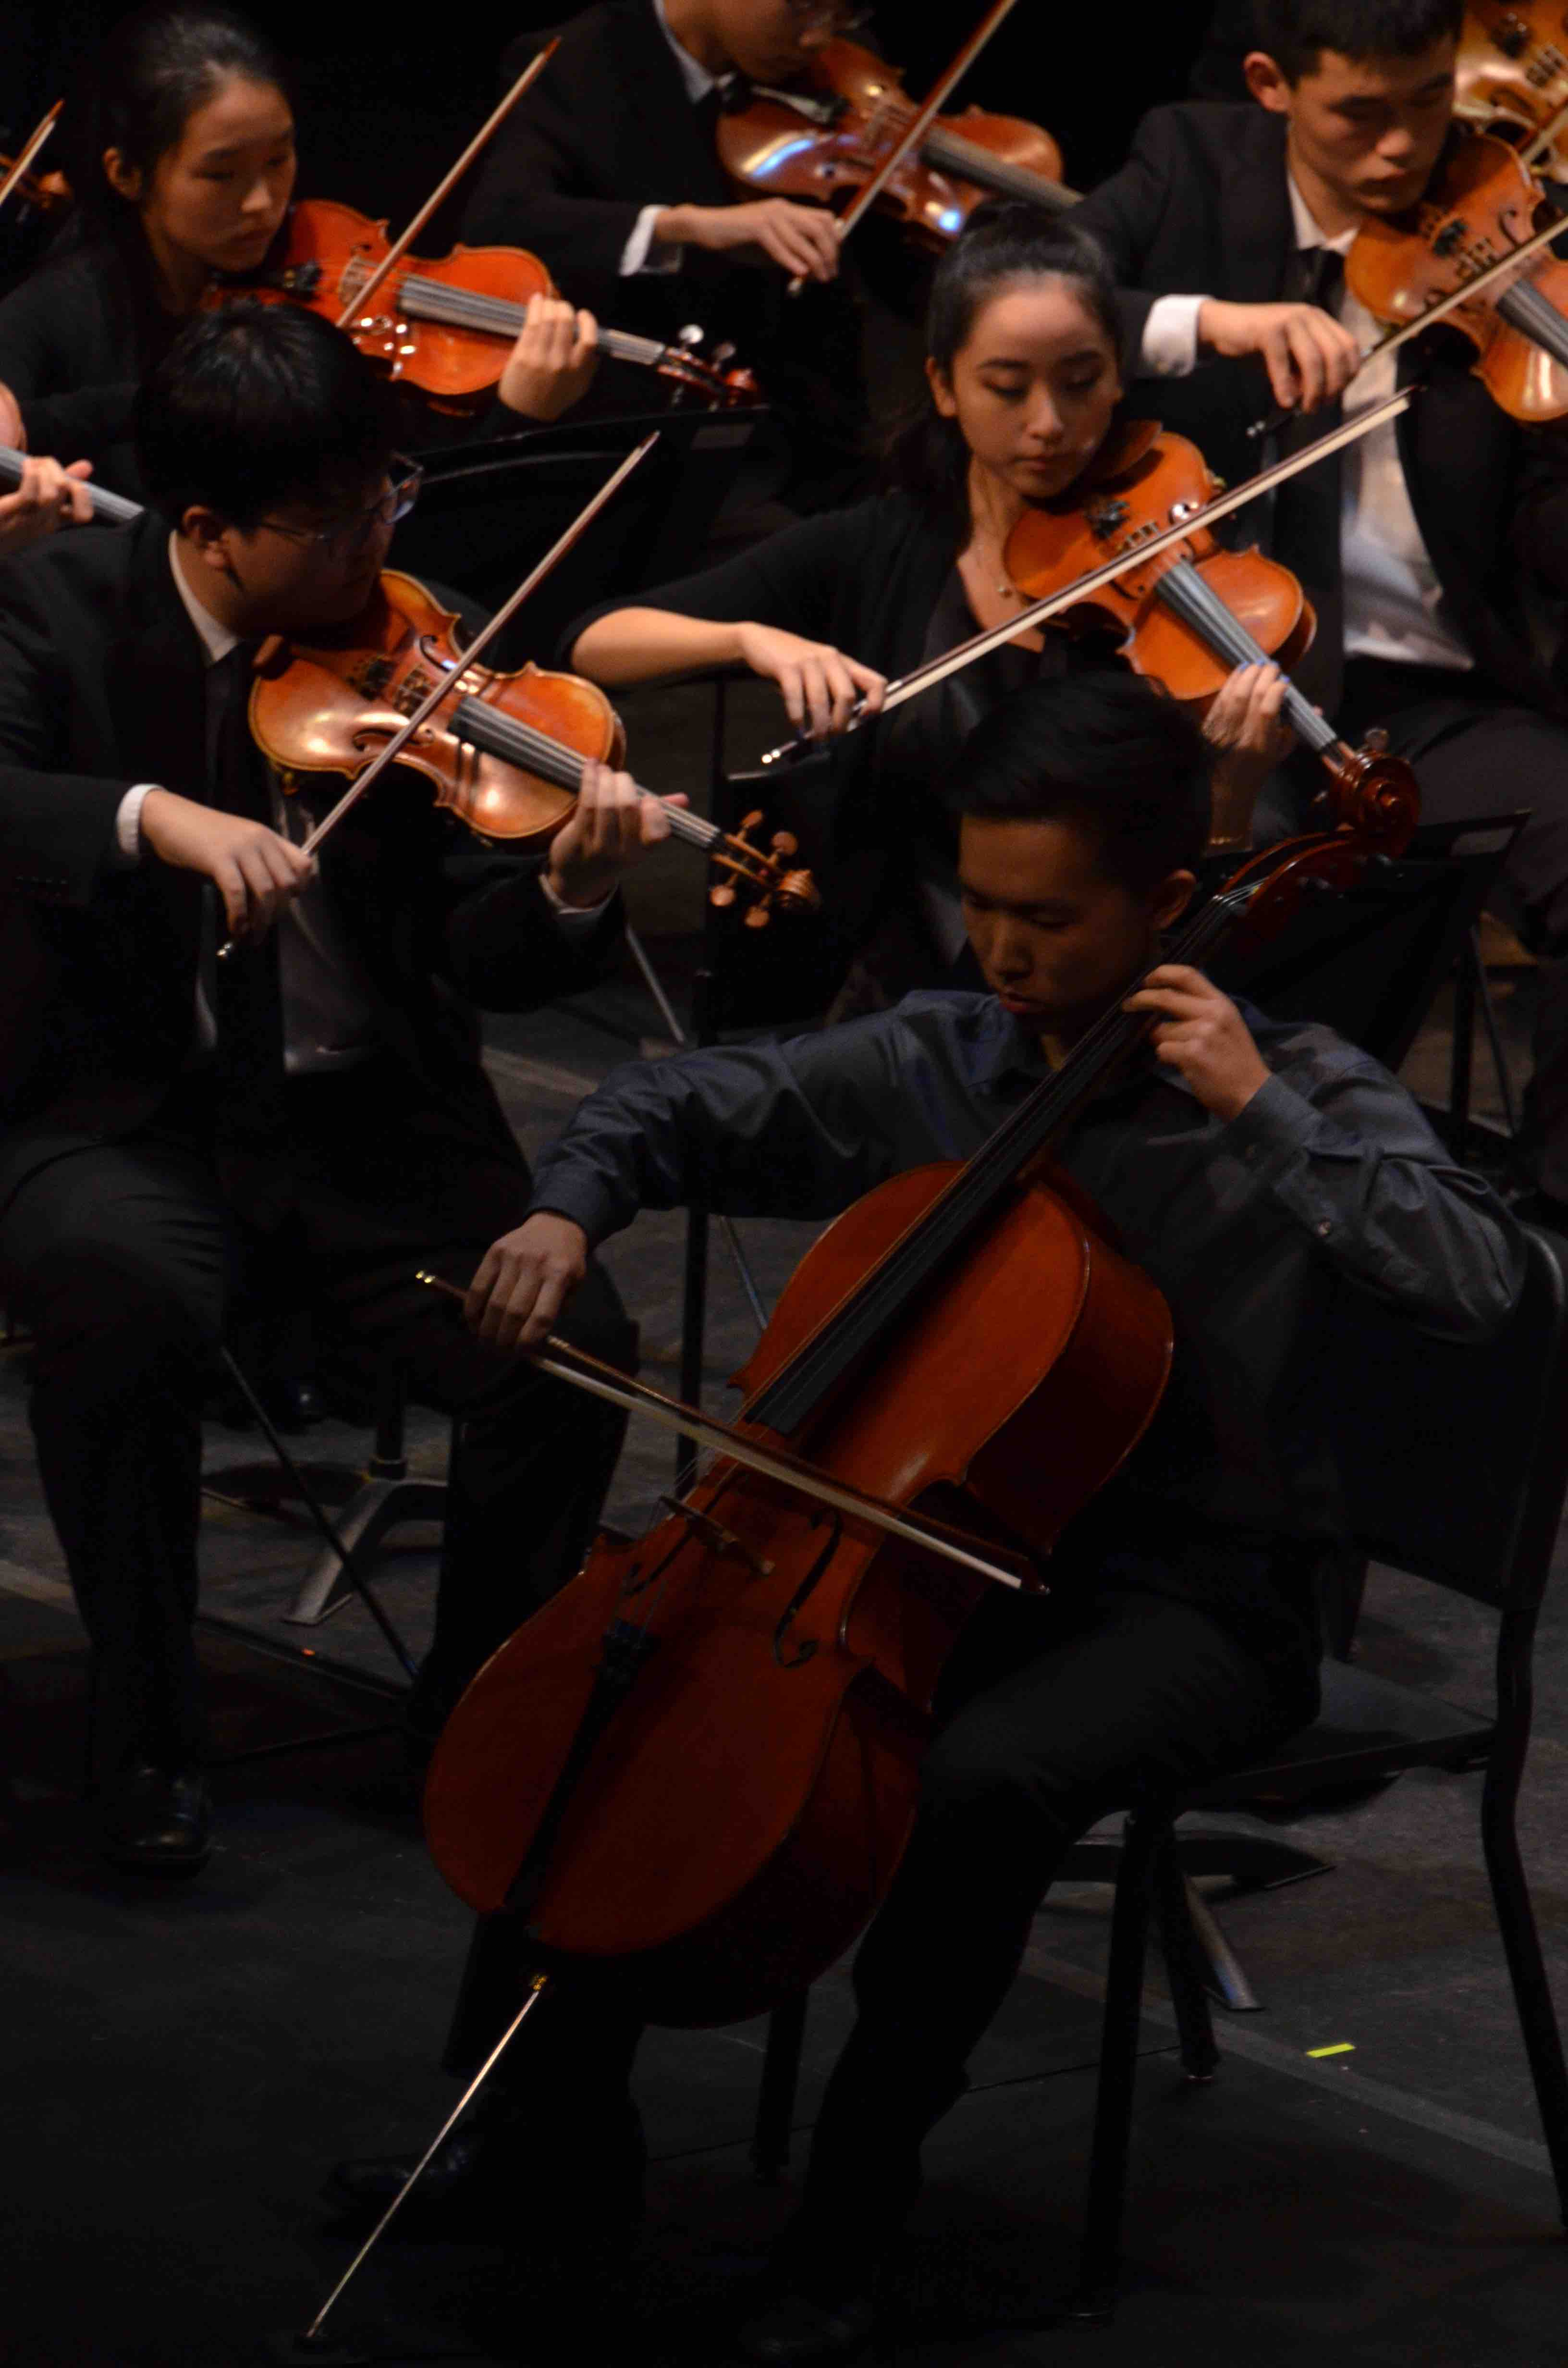 Edward+Oh+%2812%29+plays+cello+as+a+member+of+the+upper+school+Orchestra.+The+Winter+Concert+took+place+on+January+13+at+the+Mexican+Heritage+Theater.